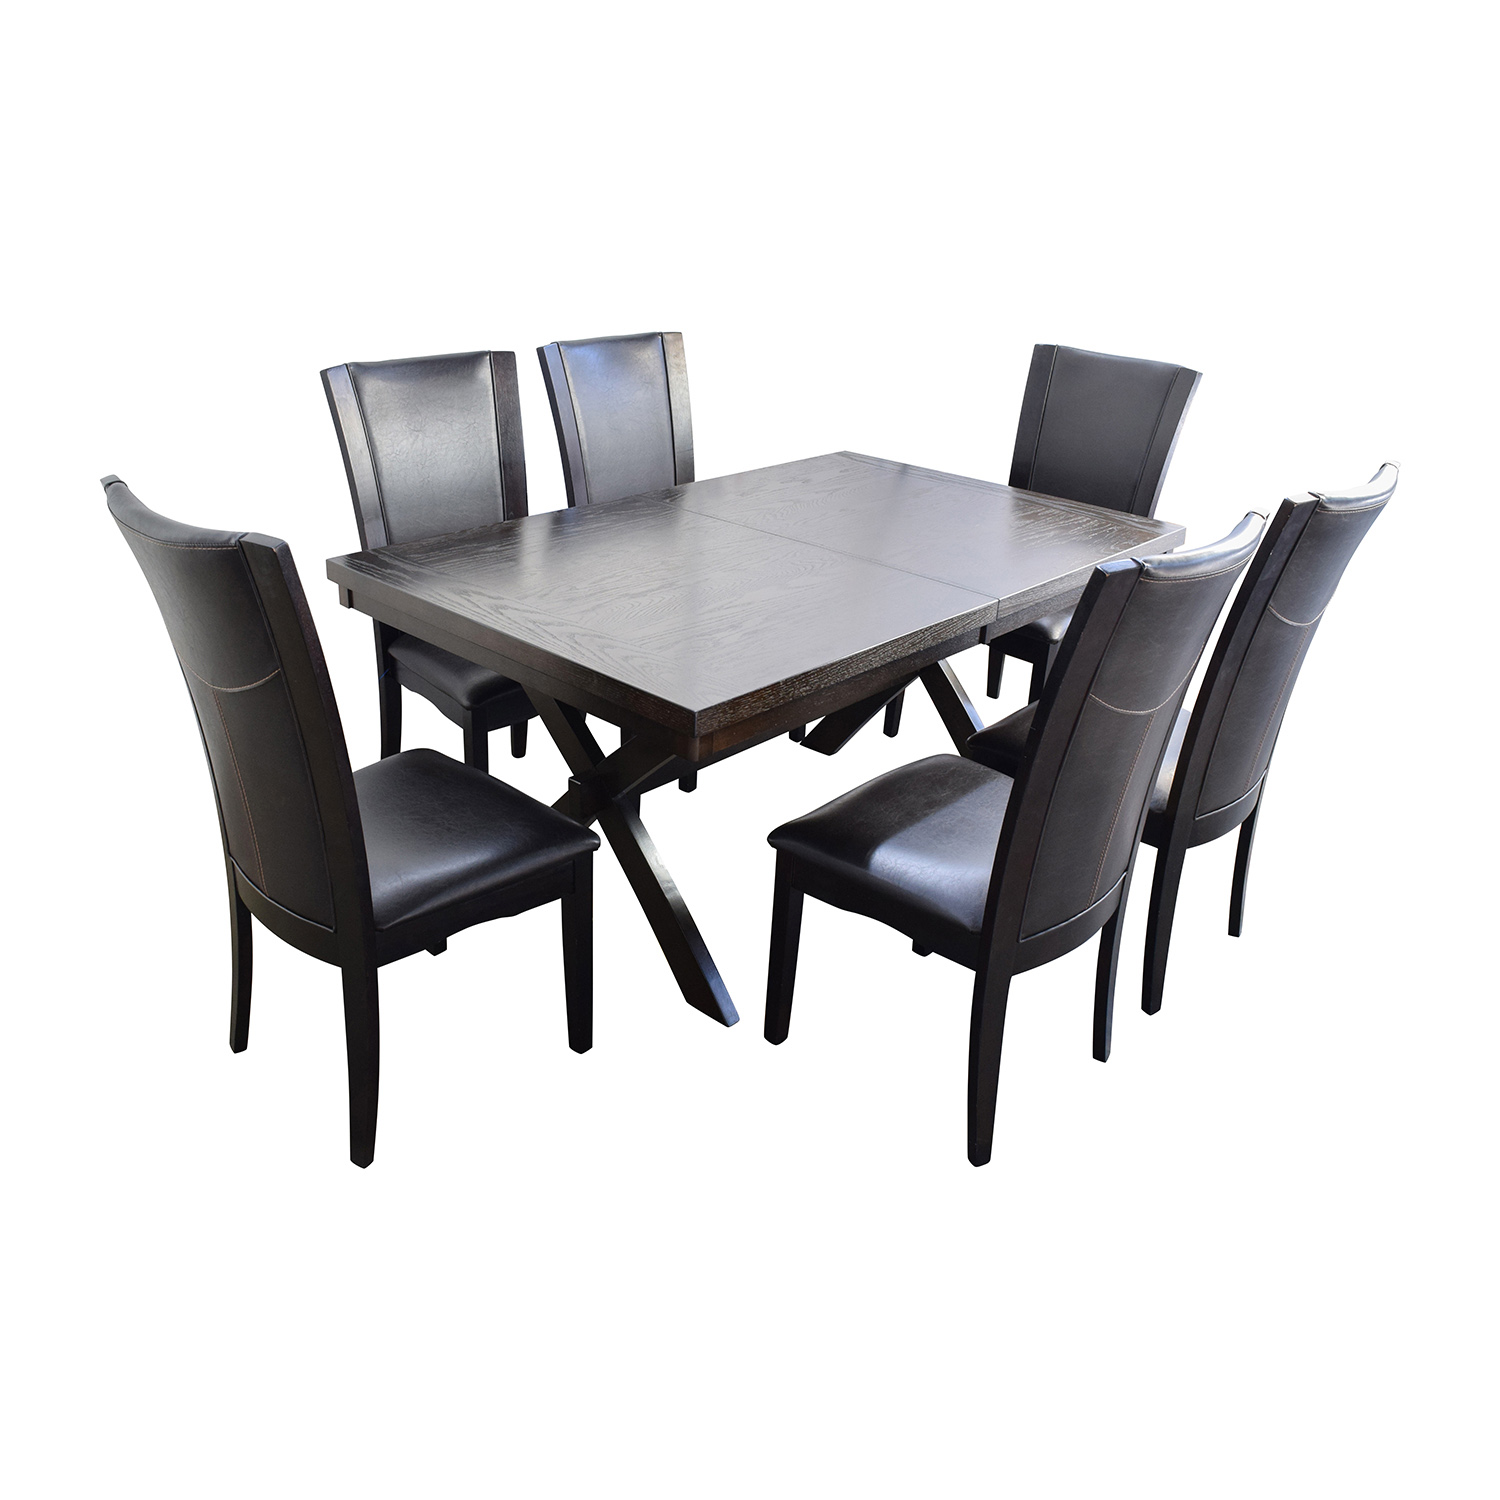 Raymour and Flanigan Raymour & Flanigan Wood and Leather Dining Set Dining Sets